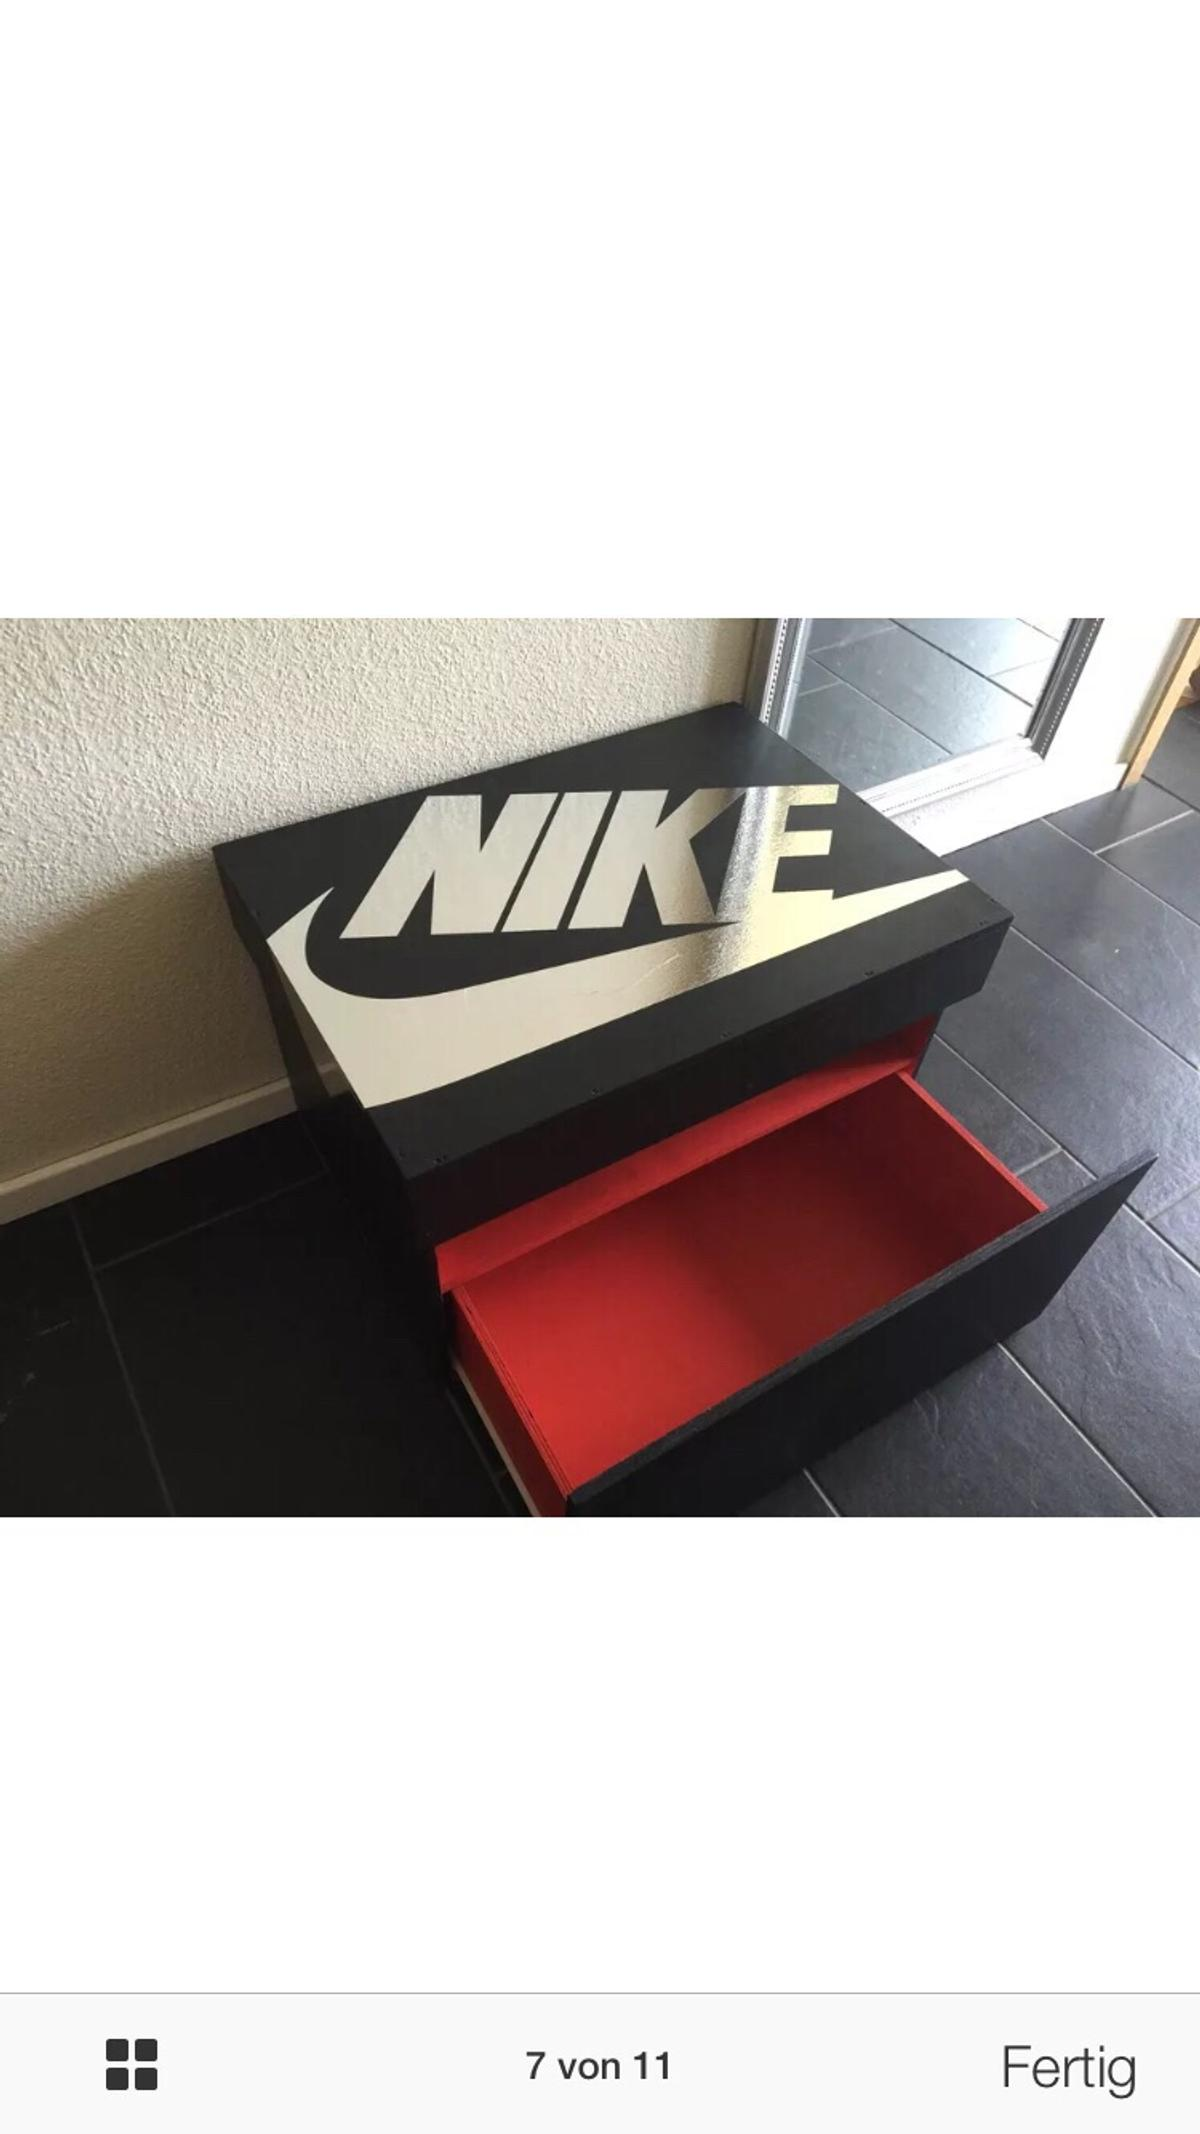 limited guantity performance sportswear brand new Sneakerbox Schuhschrank Nike in 53925 Kall for €280.00 for ...